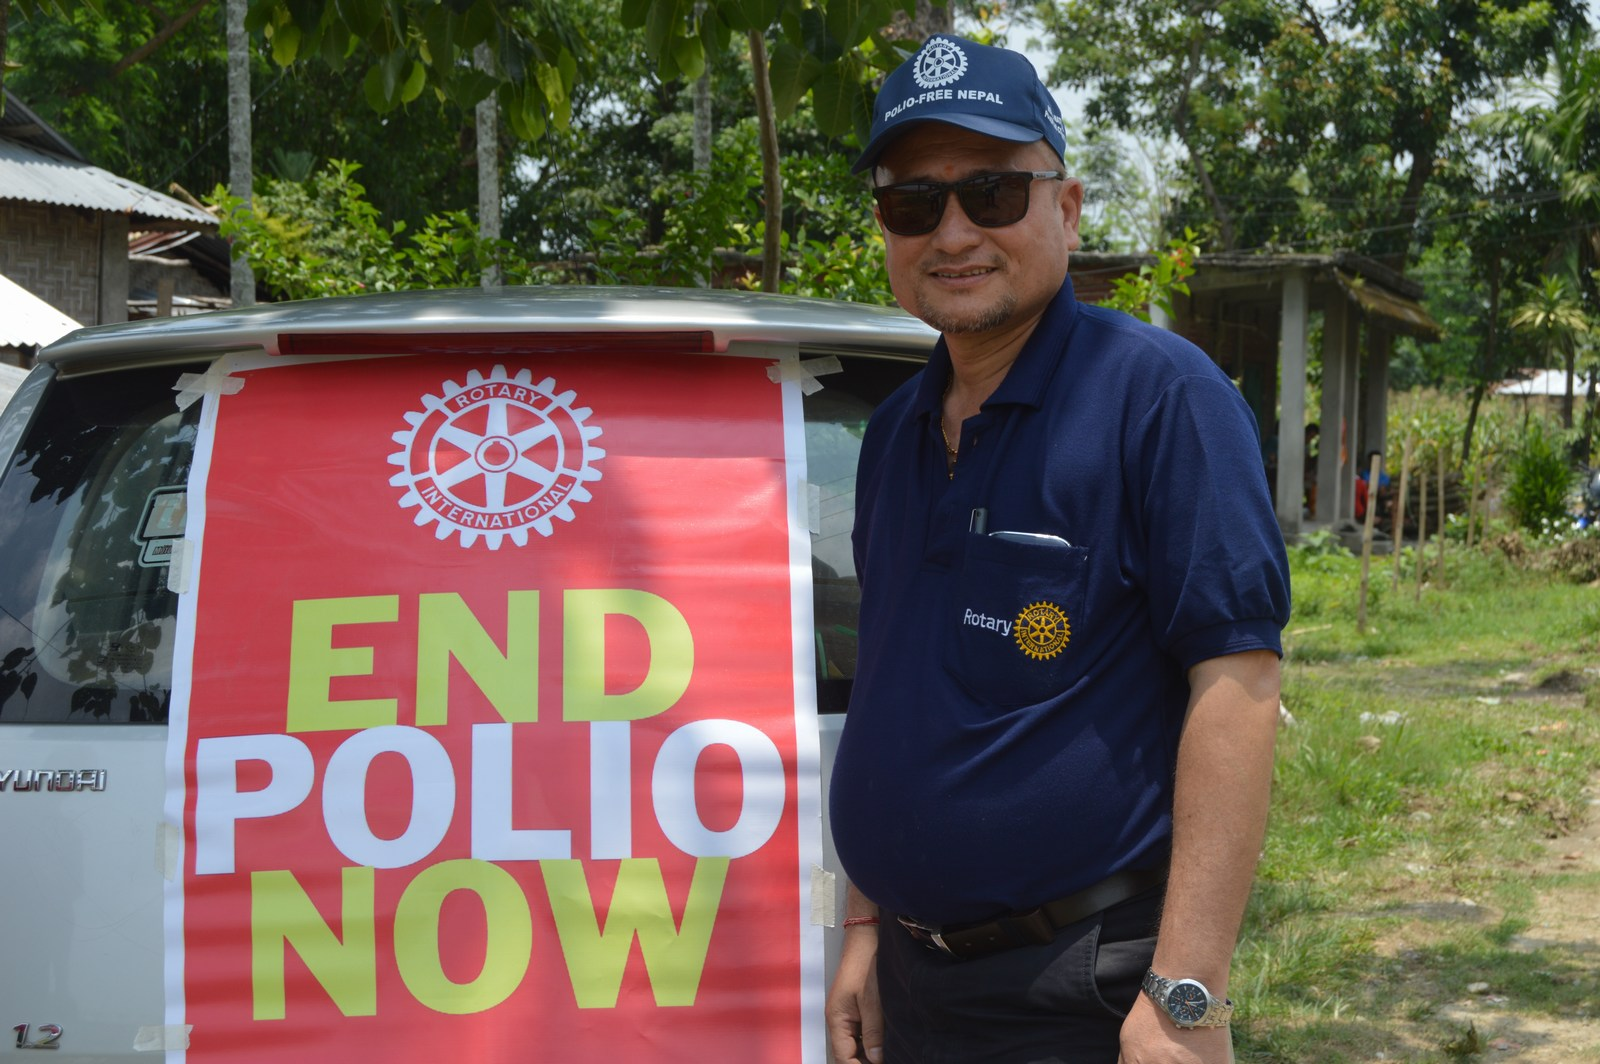 Polio Booth Inspection 32